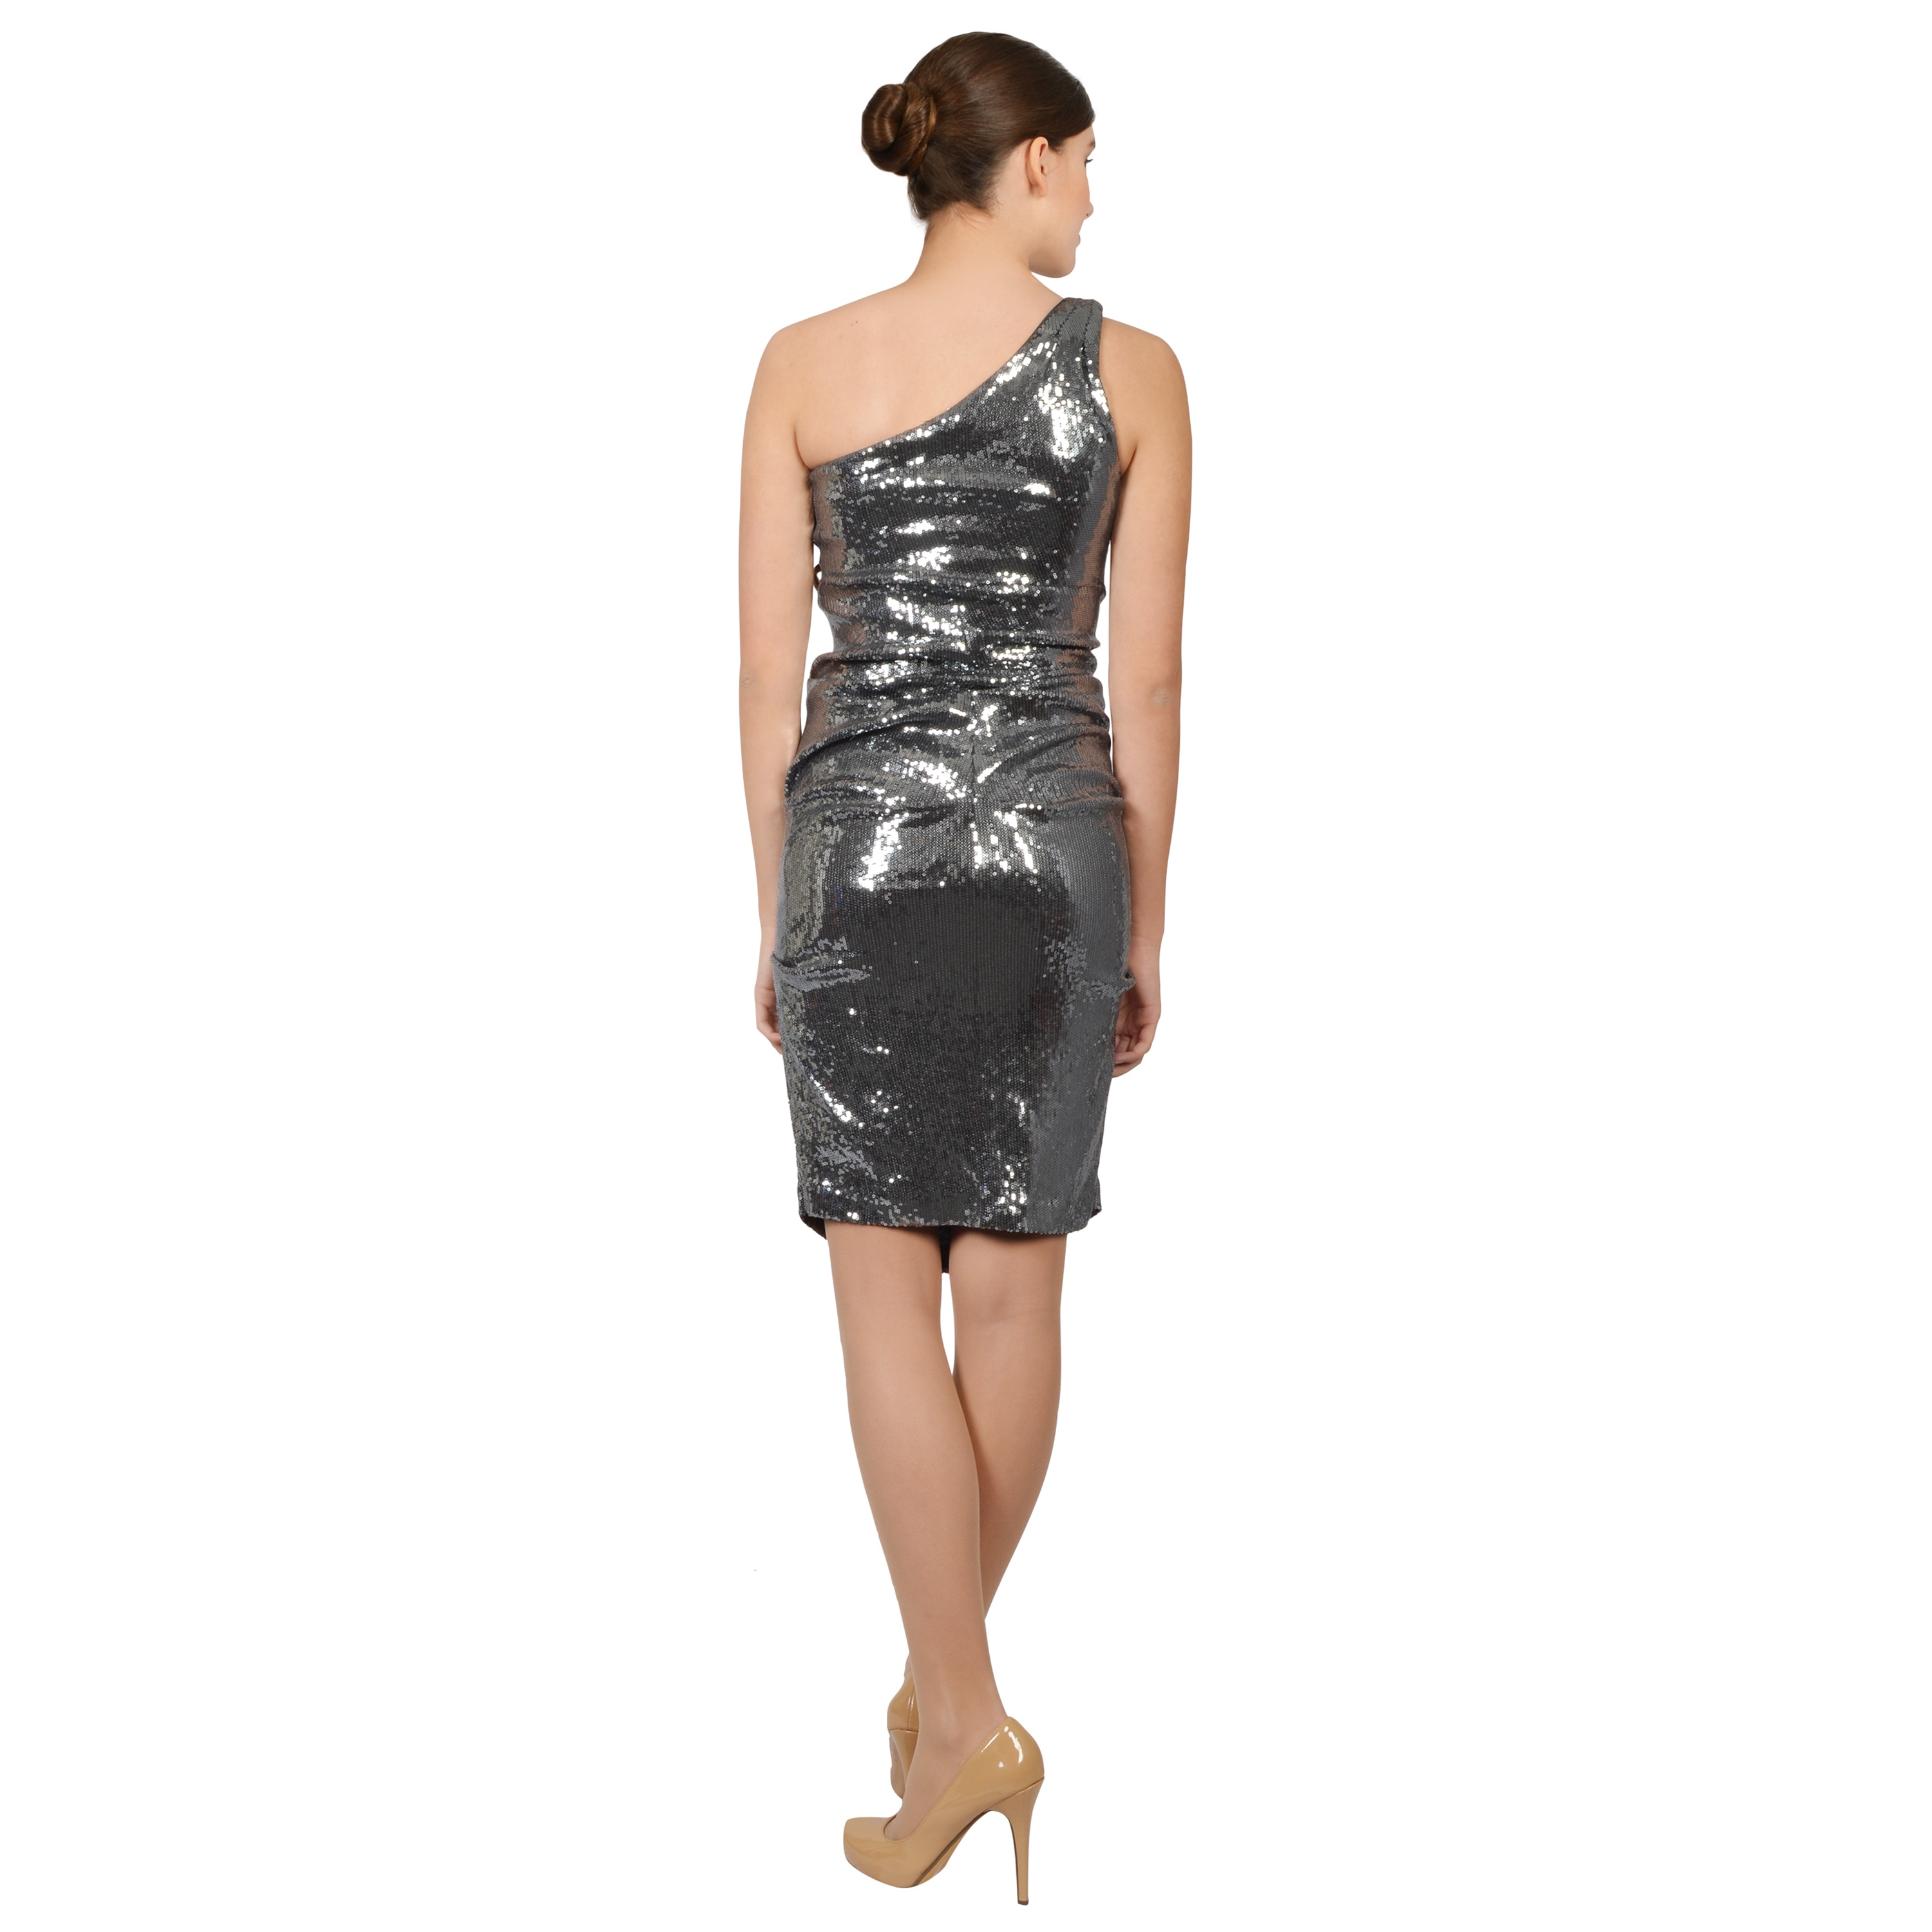 eb68ef4c803 Shop Nicole Miller Pewter Stretch Jersey Sequined One Shoulder Cocktail  Dress - Free Shipping Today - Overstock - 10095312